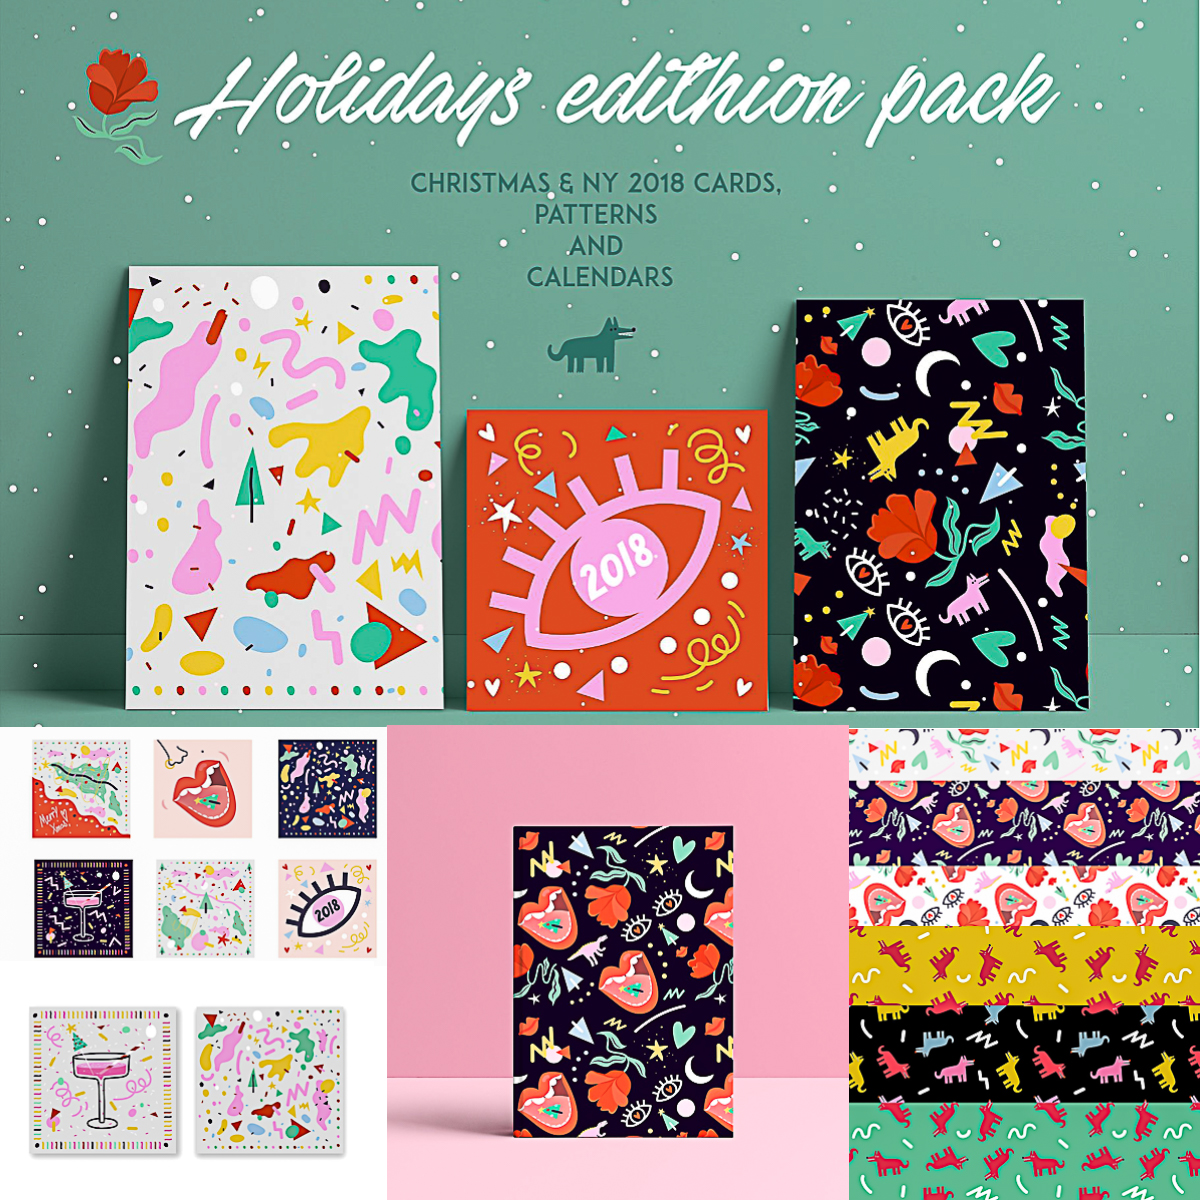 Printables and Paper Crafts   Free download   CGIspread - Part 4